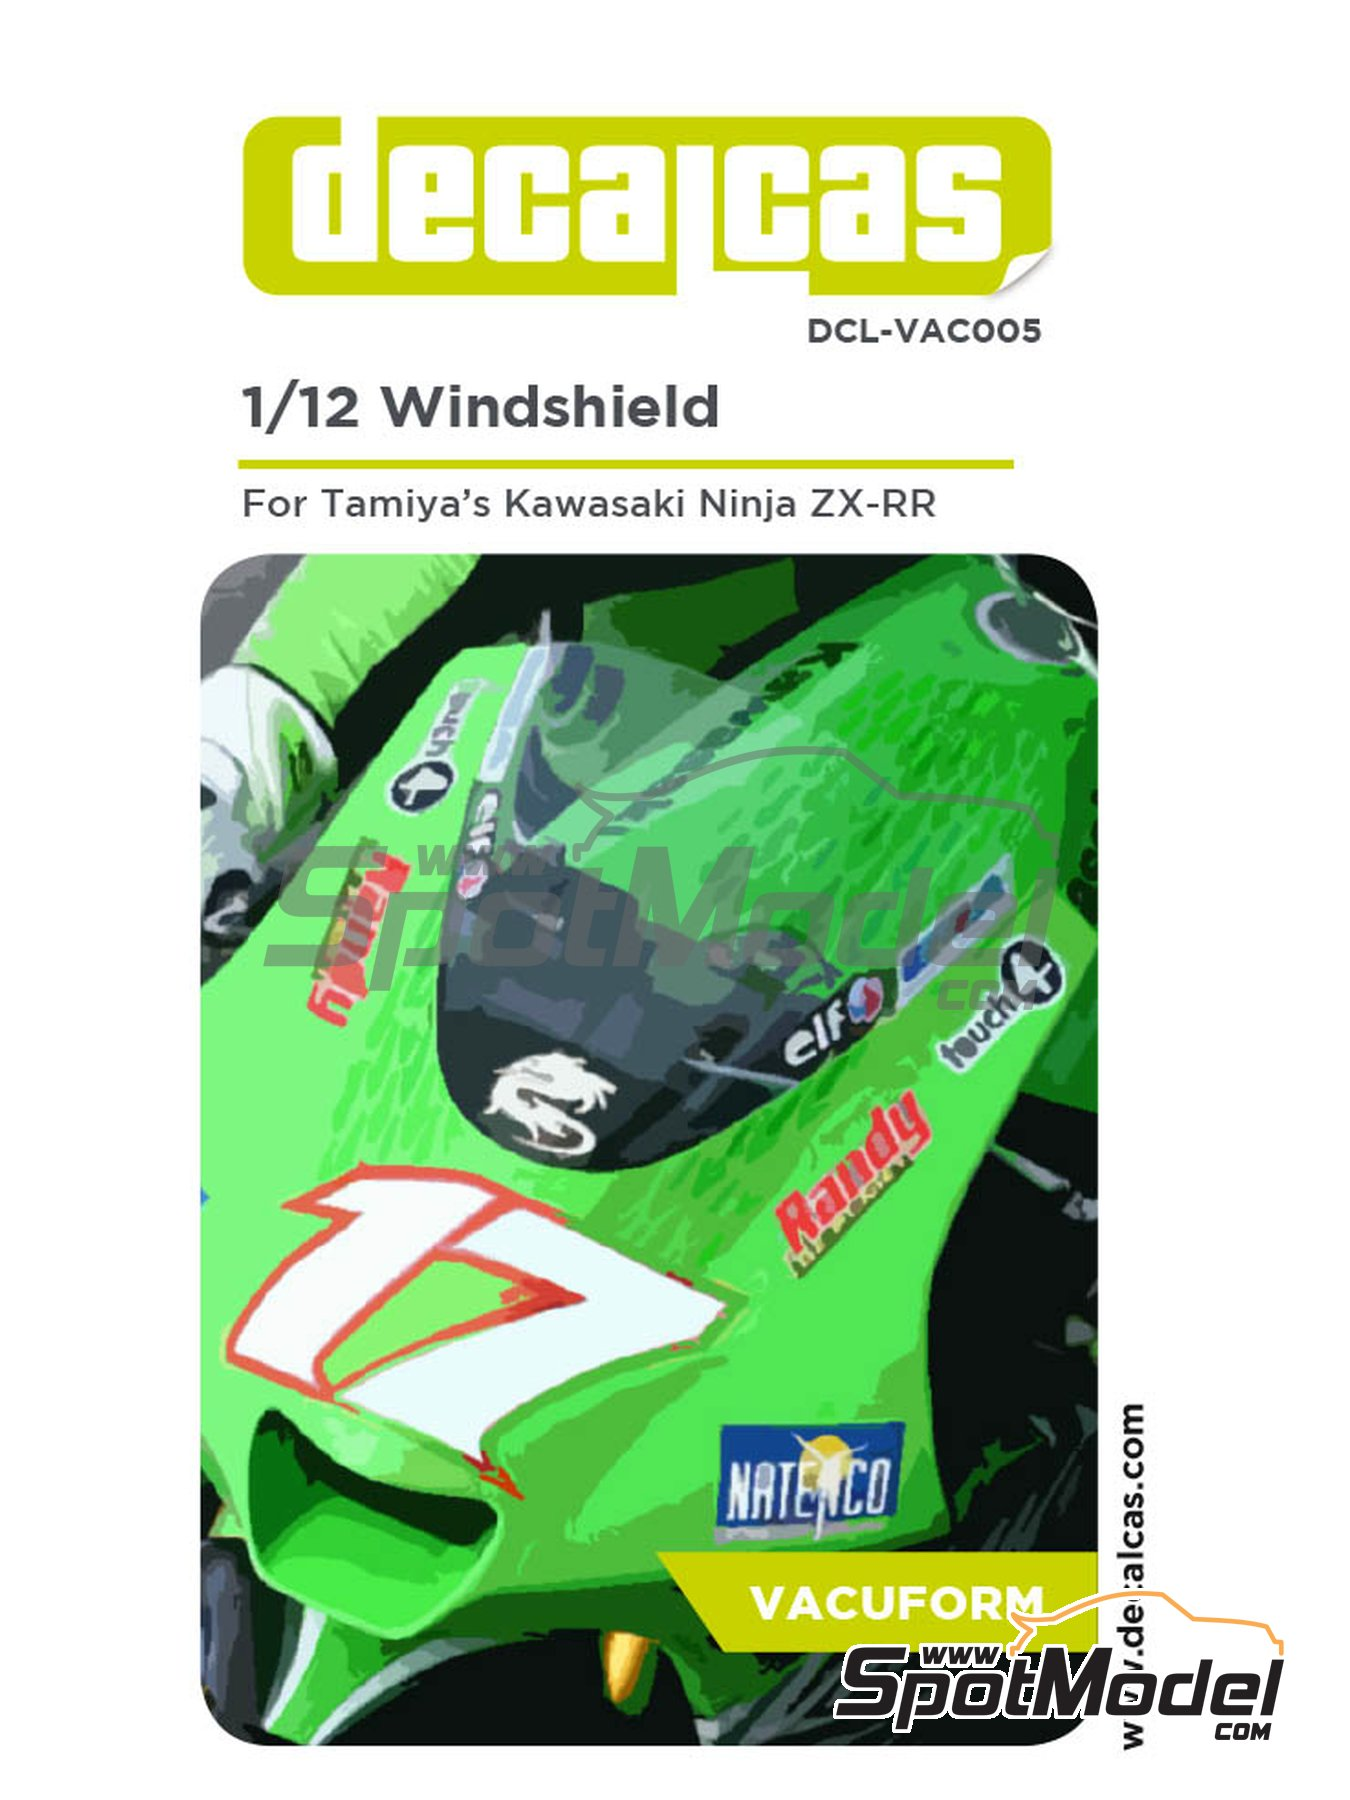 Kawasaki Ninja ZX-RR | Vacuum formed parts in 1/12 scale manufactured by Decalcas (ref. DCL-VAC005) image